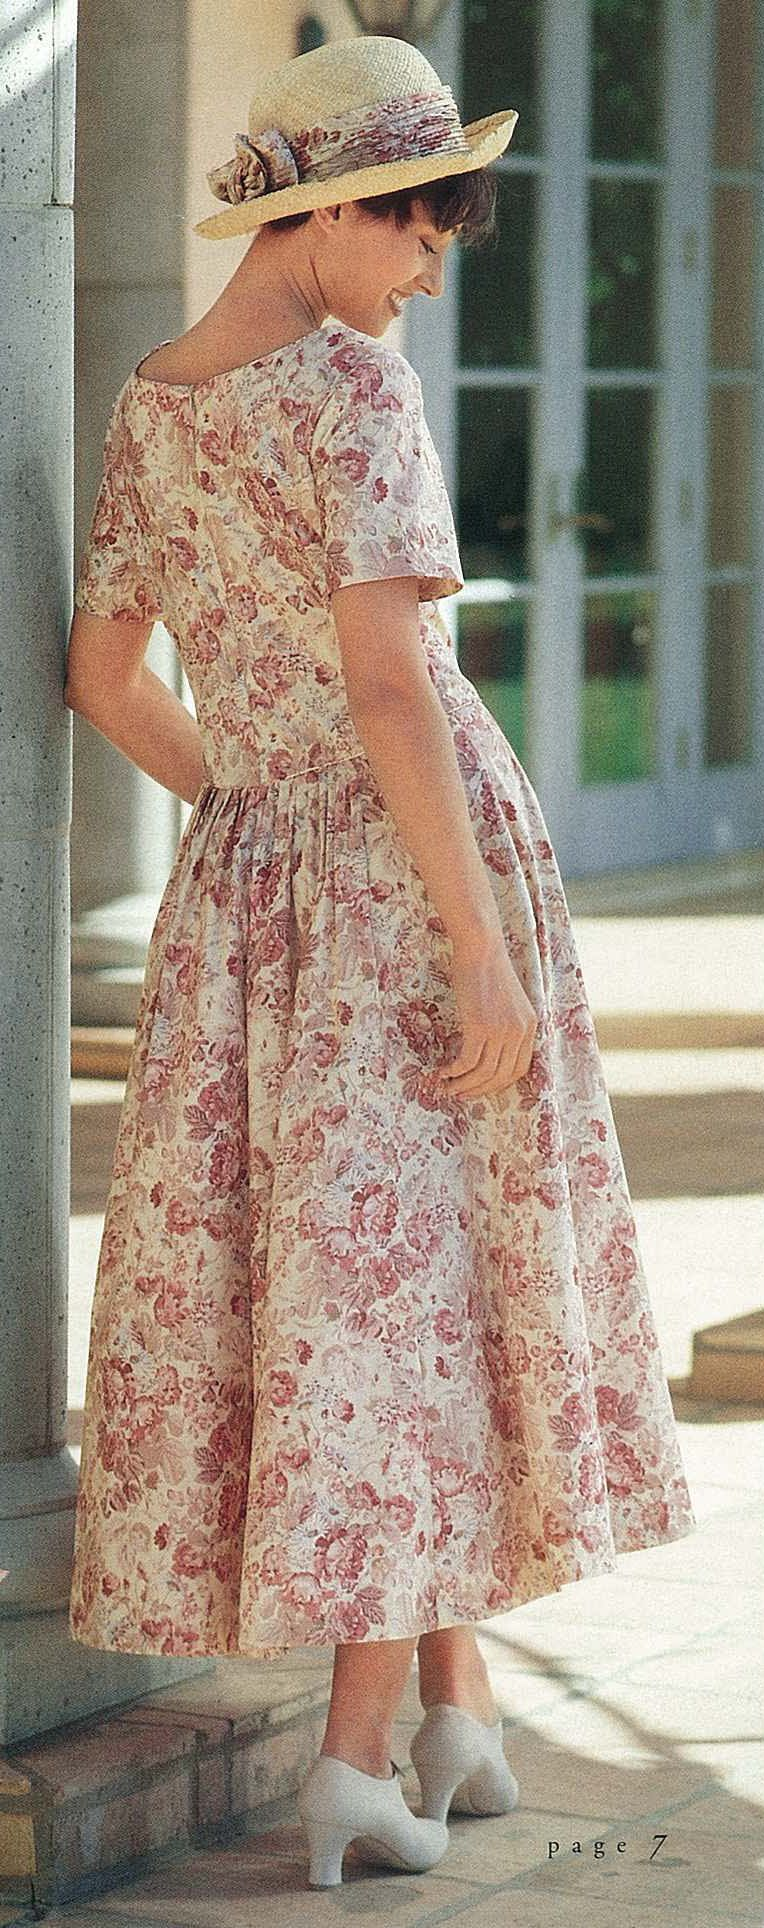 She's a natural for spring with Laura Ashley's floral trimmed straw hat matching the v-waisted cotton dress.